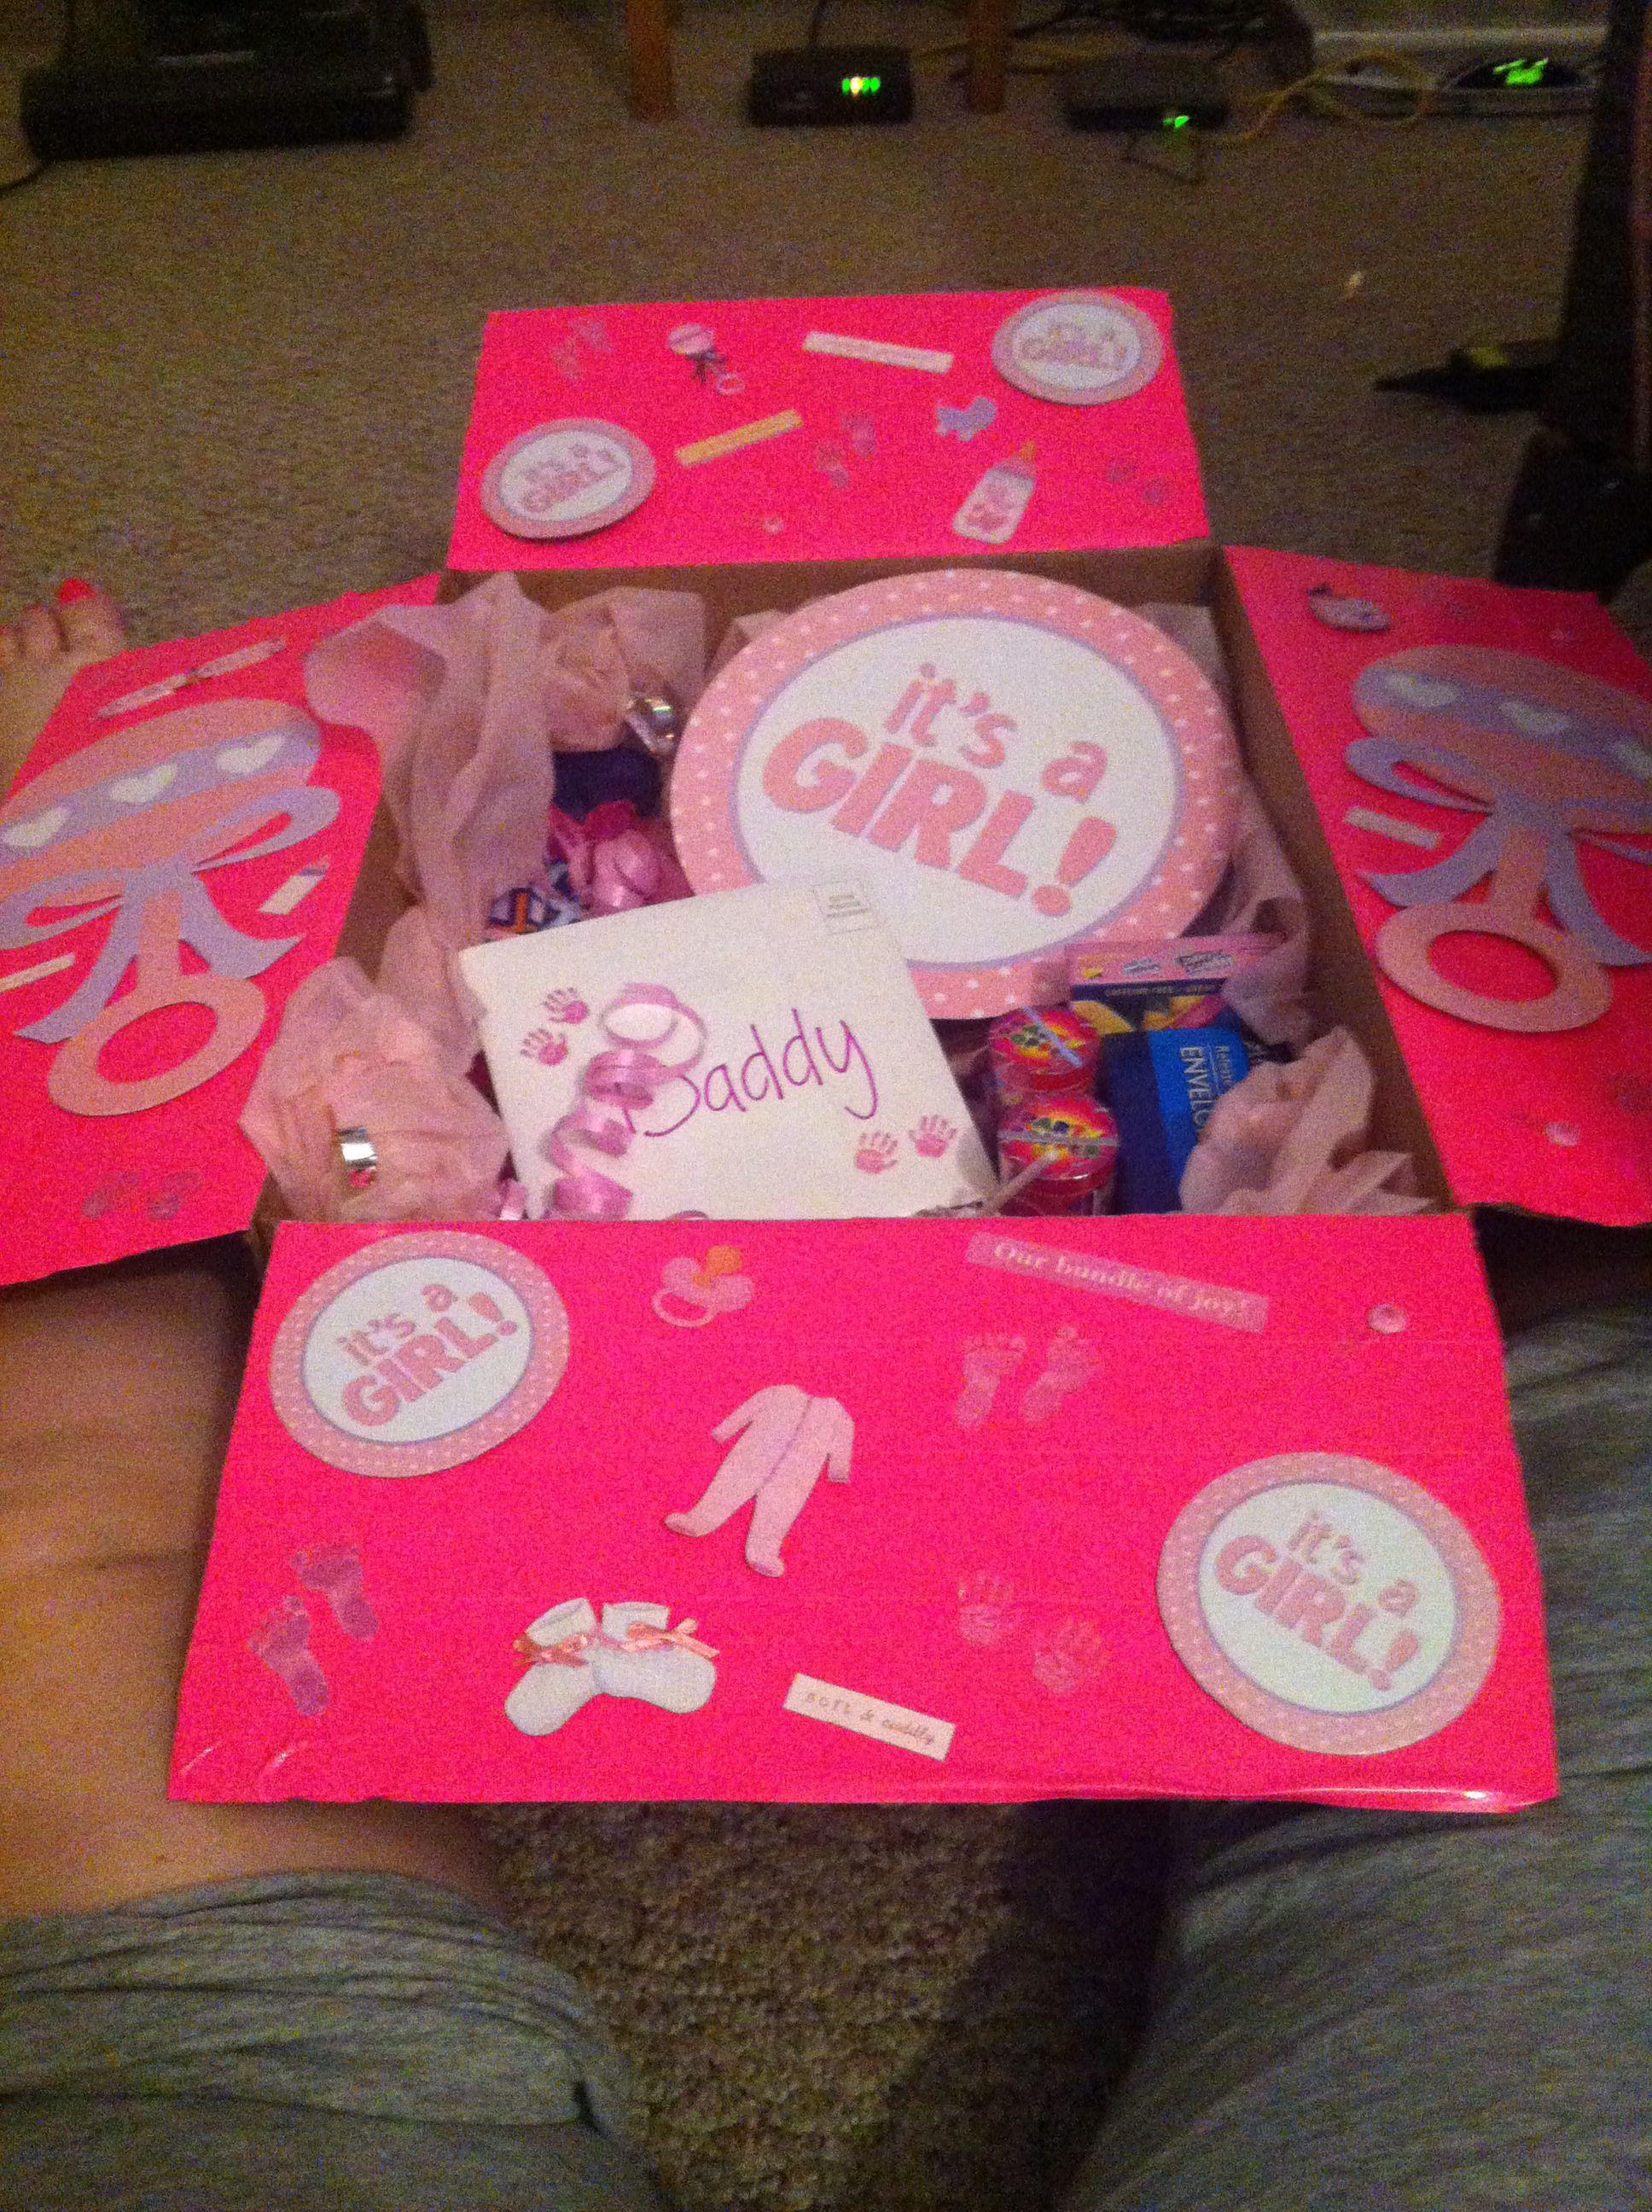 It s a girl theme care package My husband deployed 5 hours after